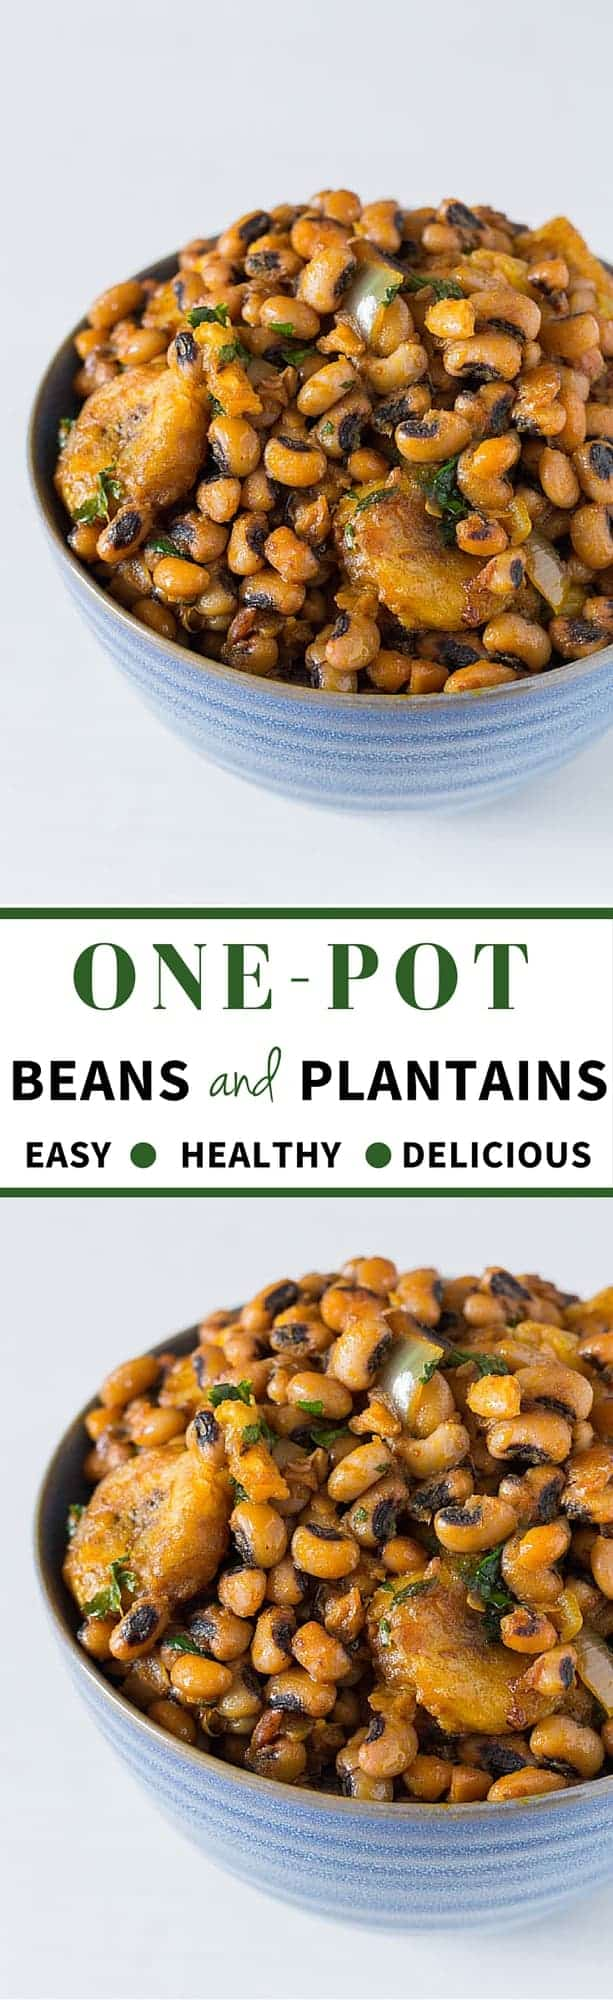 One Pot Beans and Plantains Recipes - Recipes From A Pantry